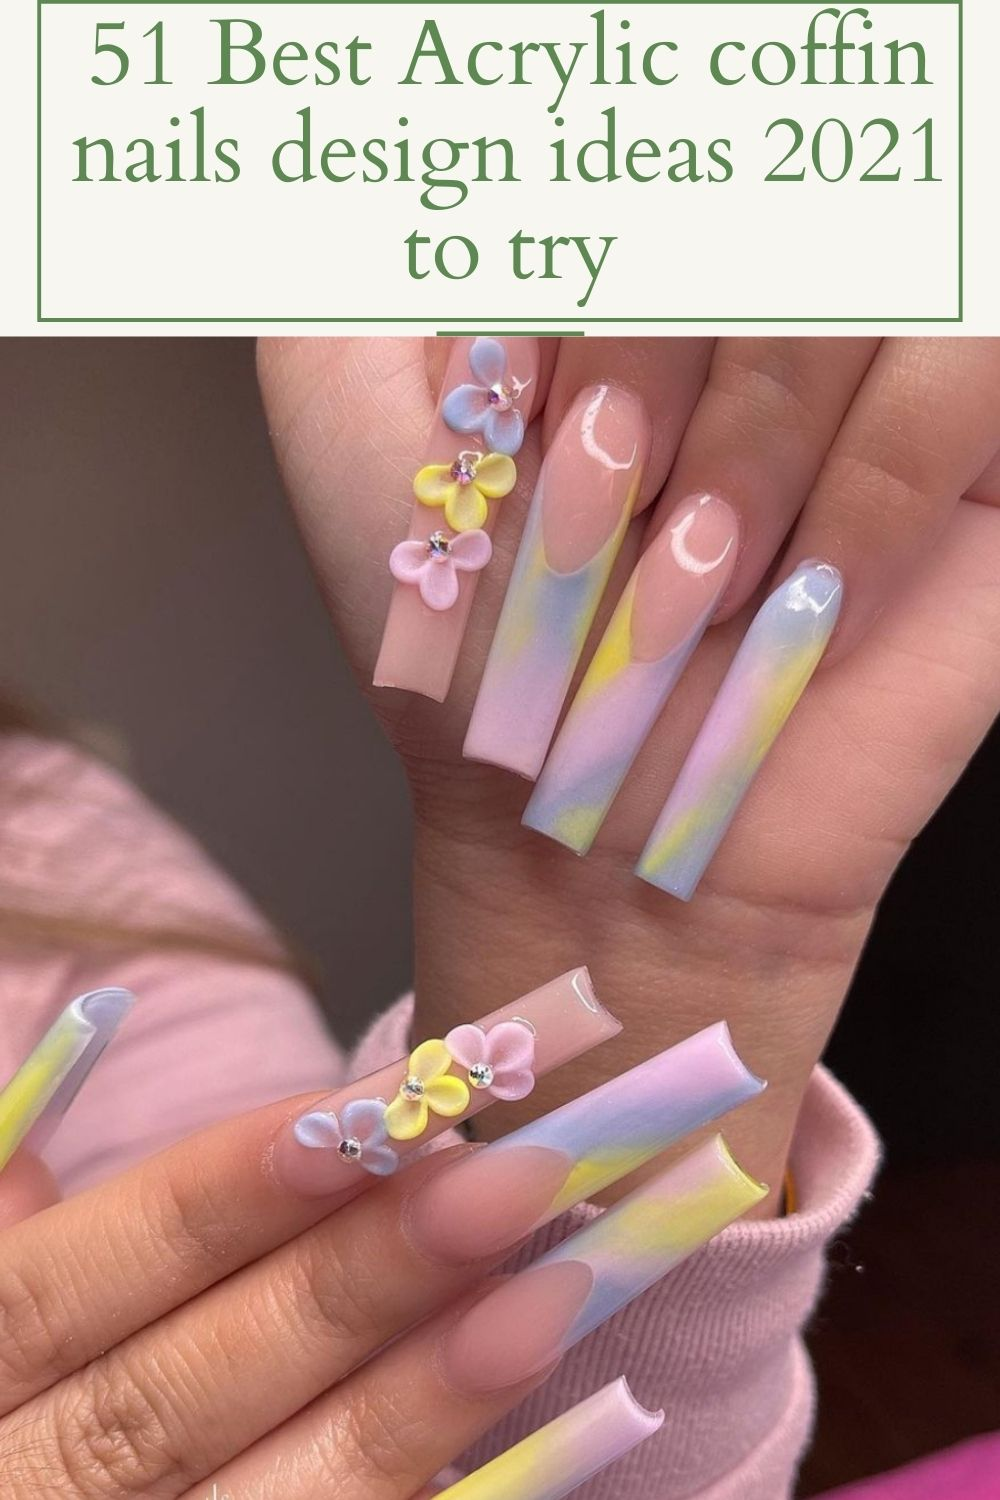 51 Best acrylic coffin nails design for Summer to try!